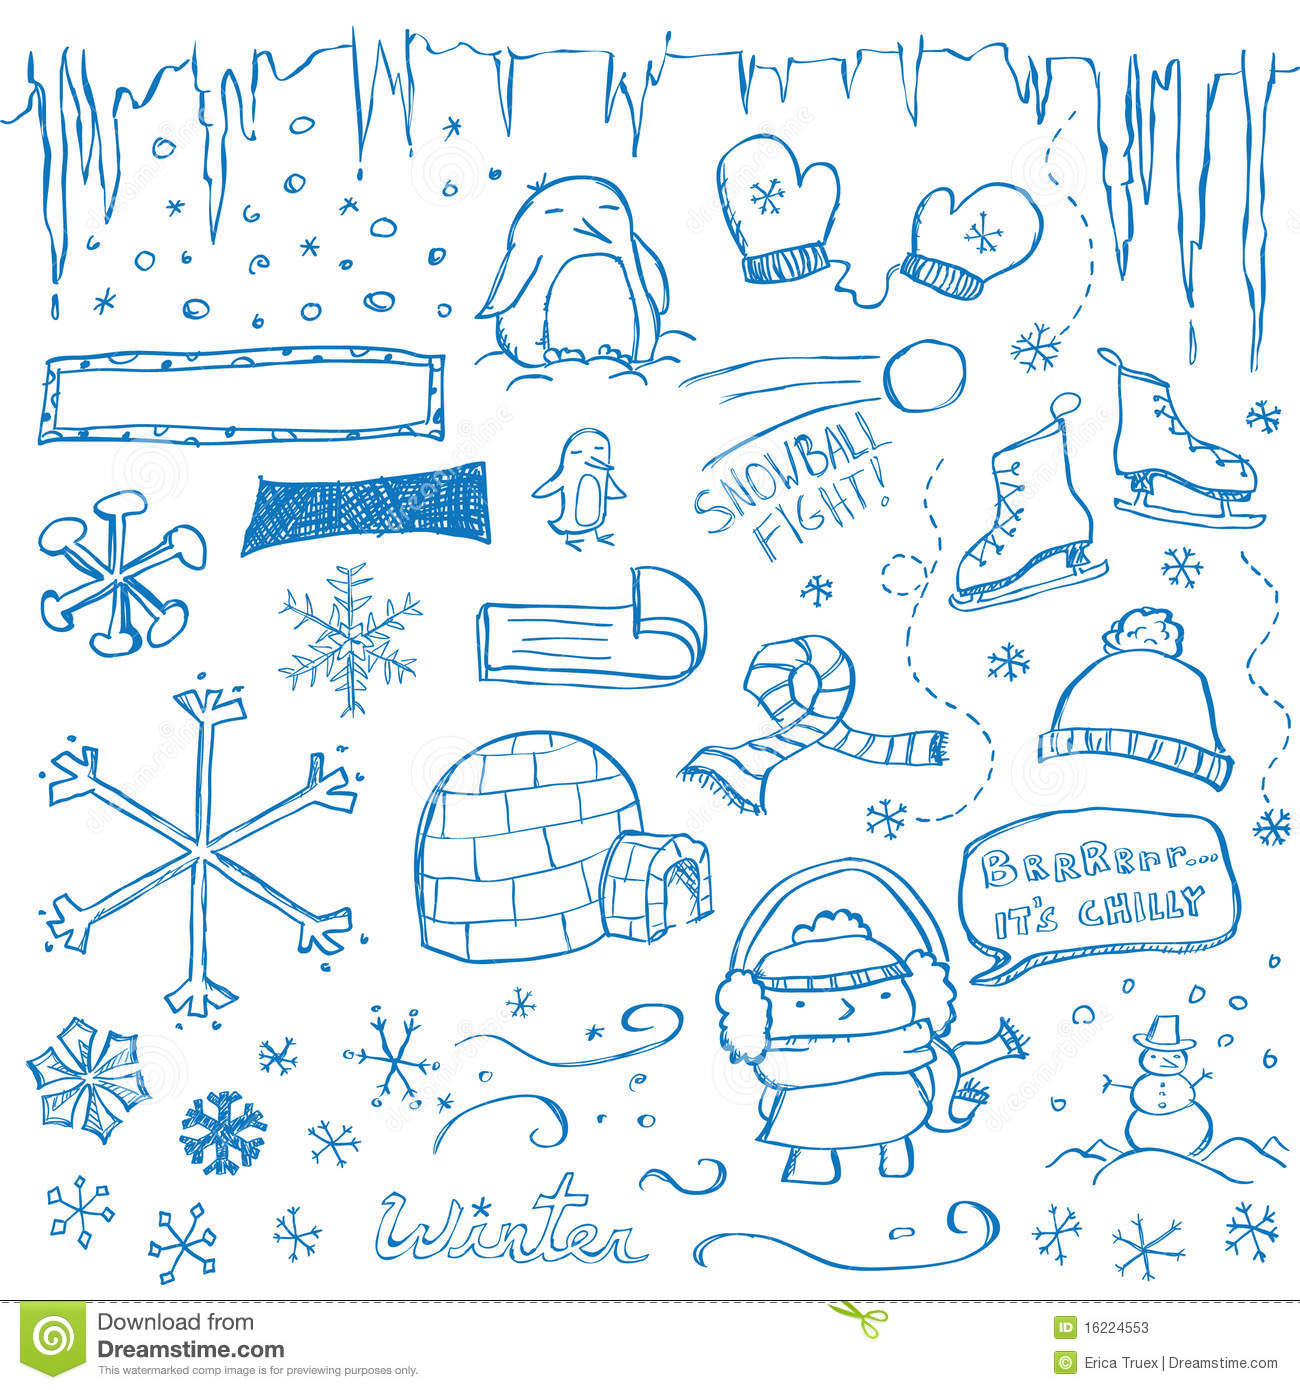 Christmas decor clipart - Winter Doodles Stock Photos Image 16224553